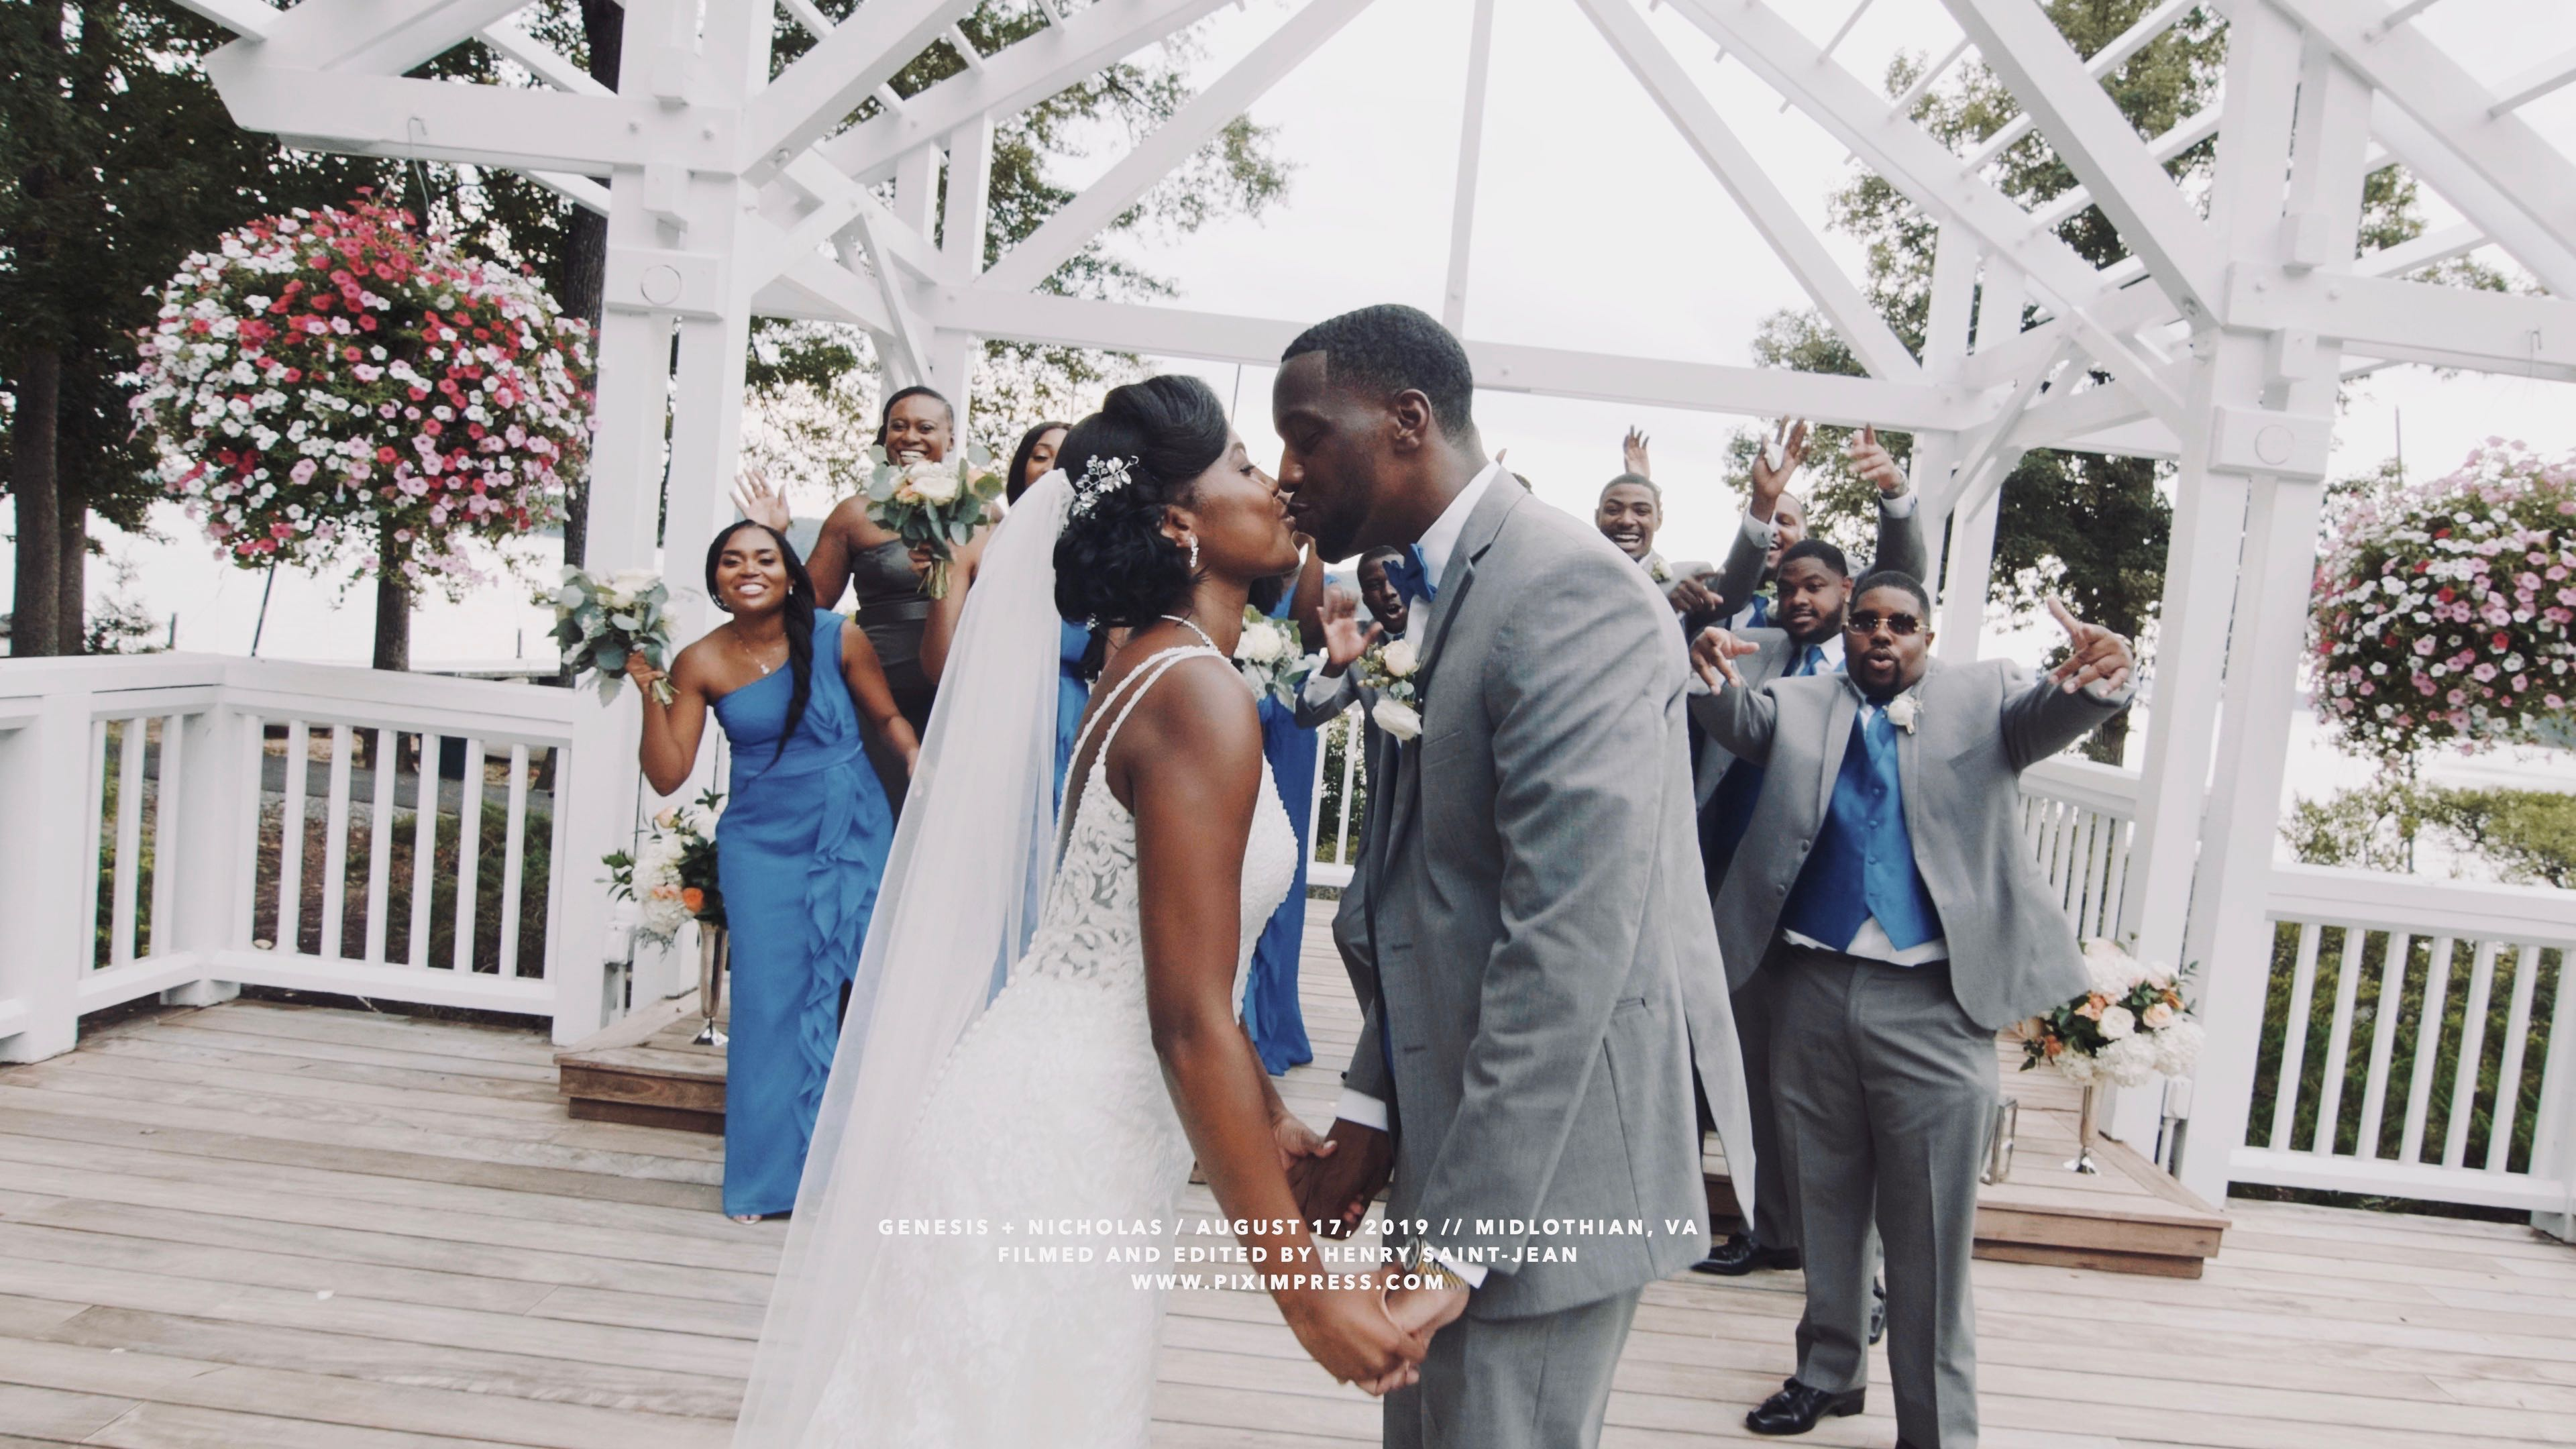 Genesis + Nicholas | Midlothian, Virginia | Boathouse At Sunday Park